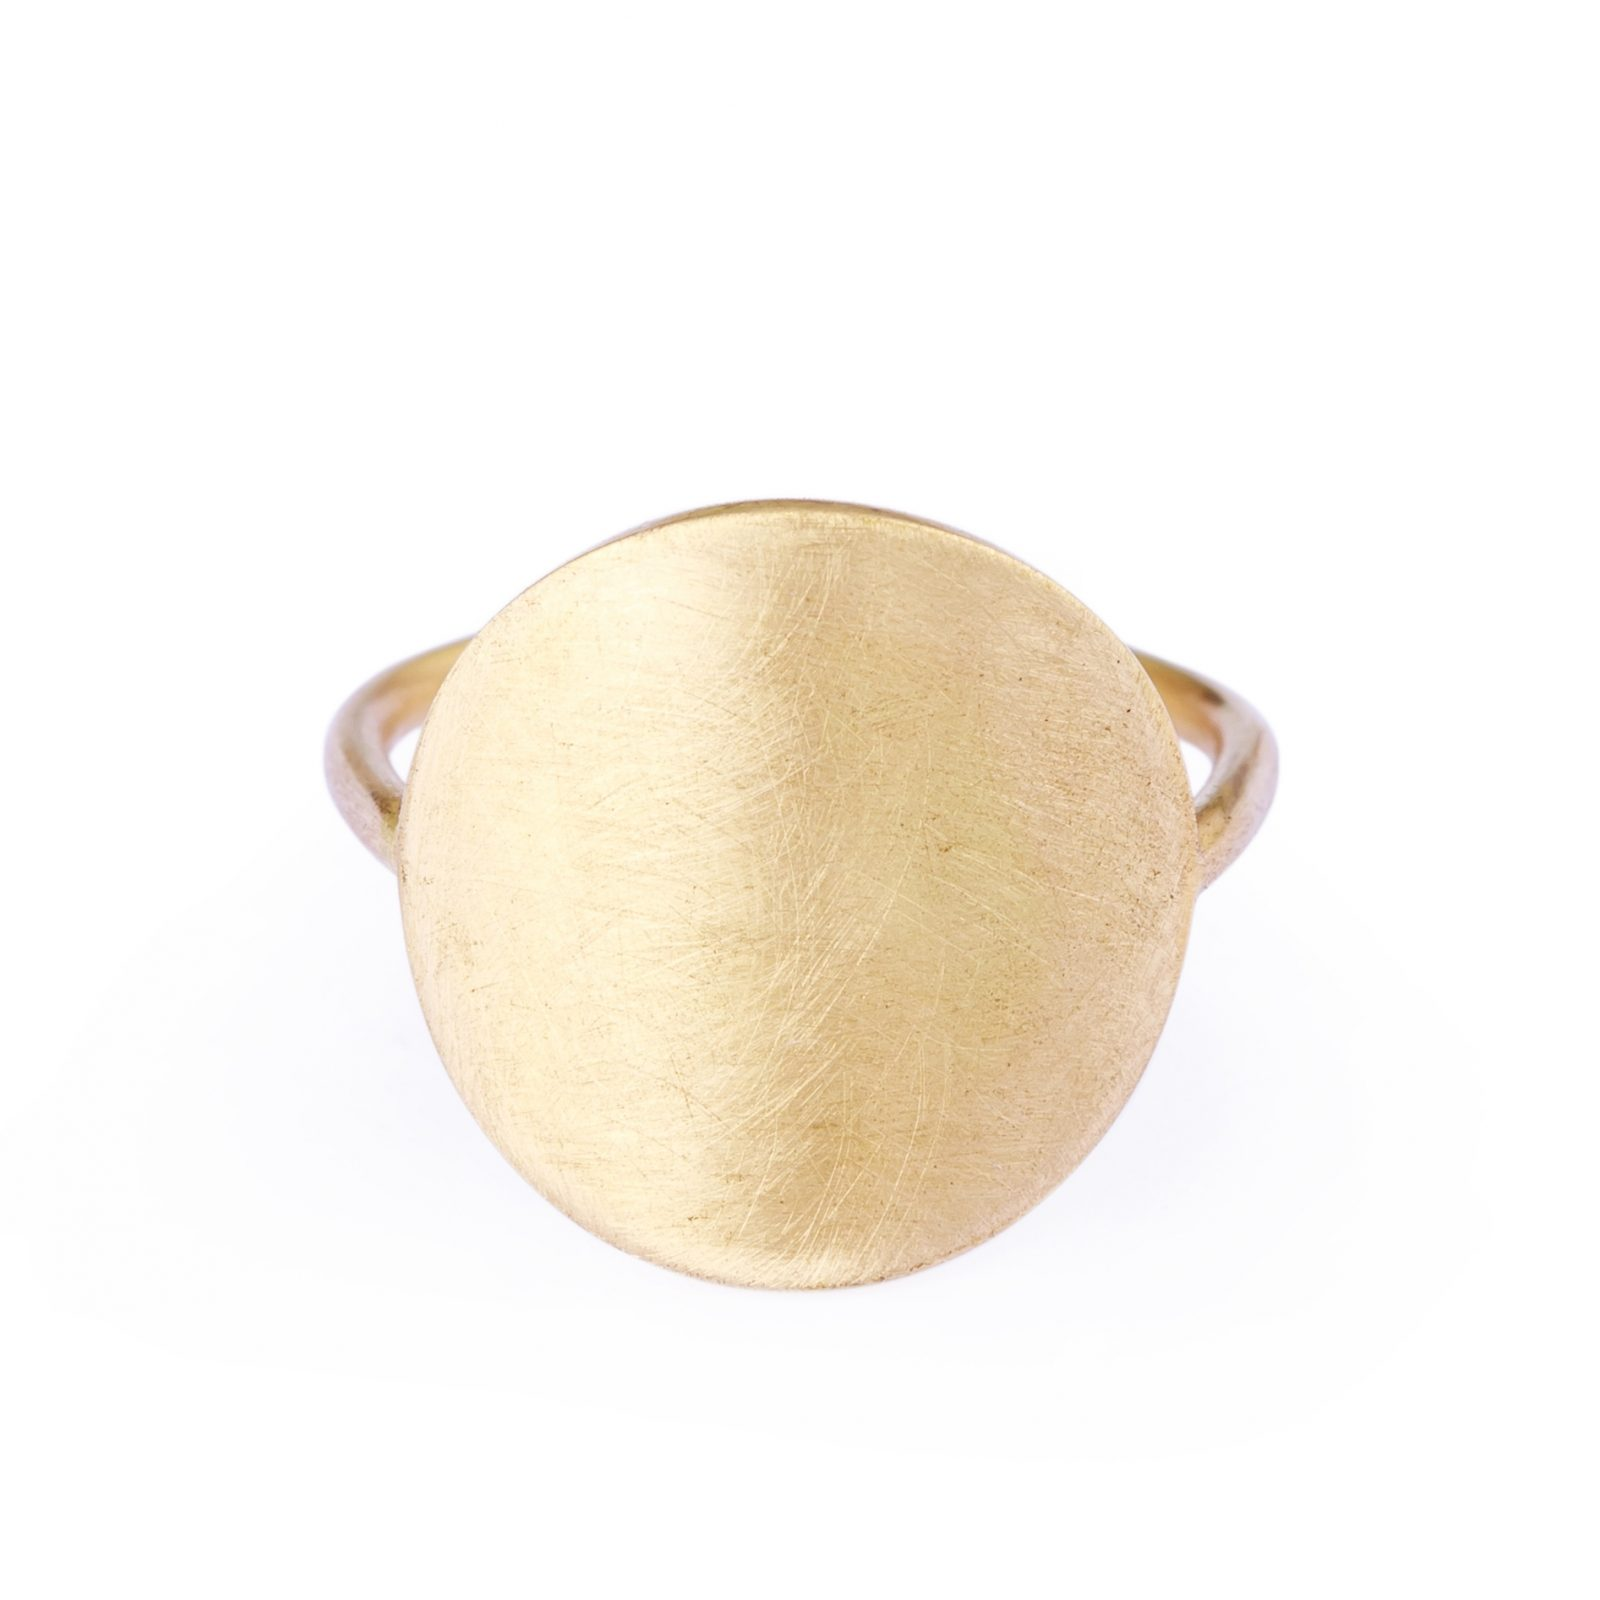 Sia Taylor KR4 Y Yellow Gold 15mm Moon Ring WB